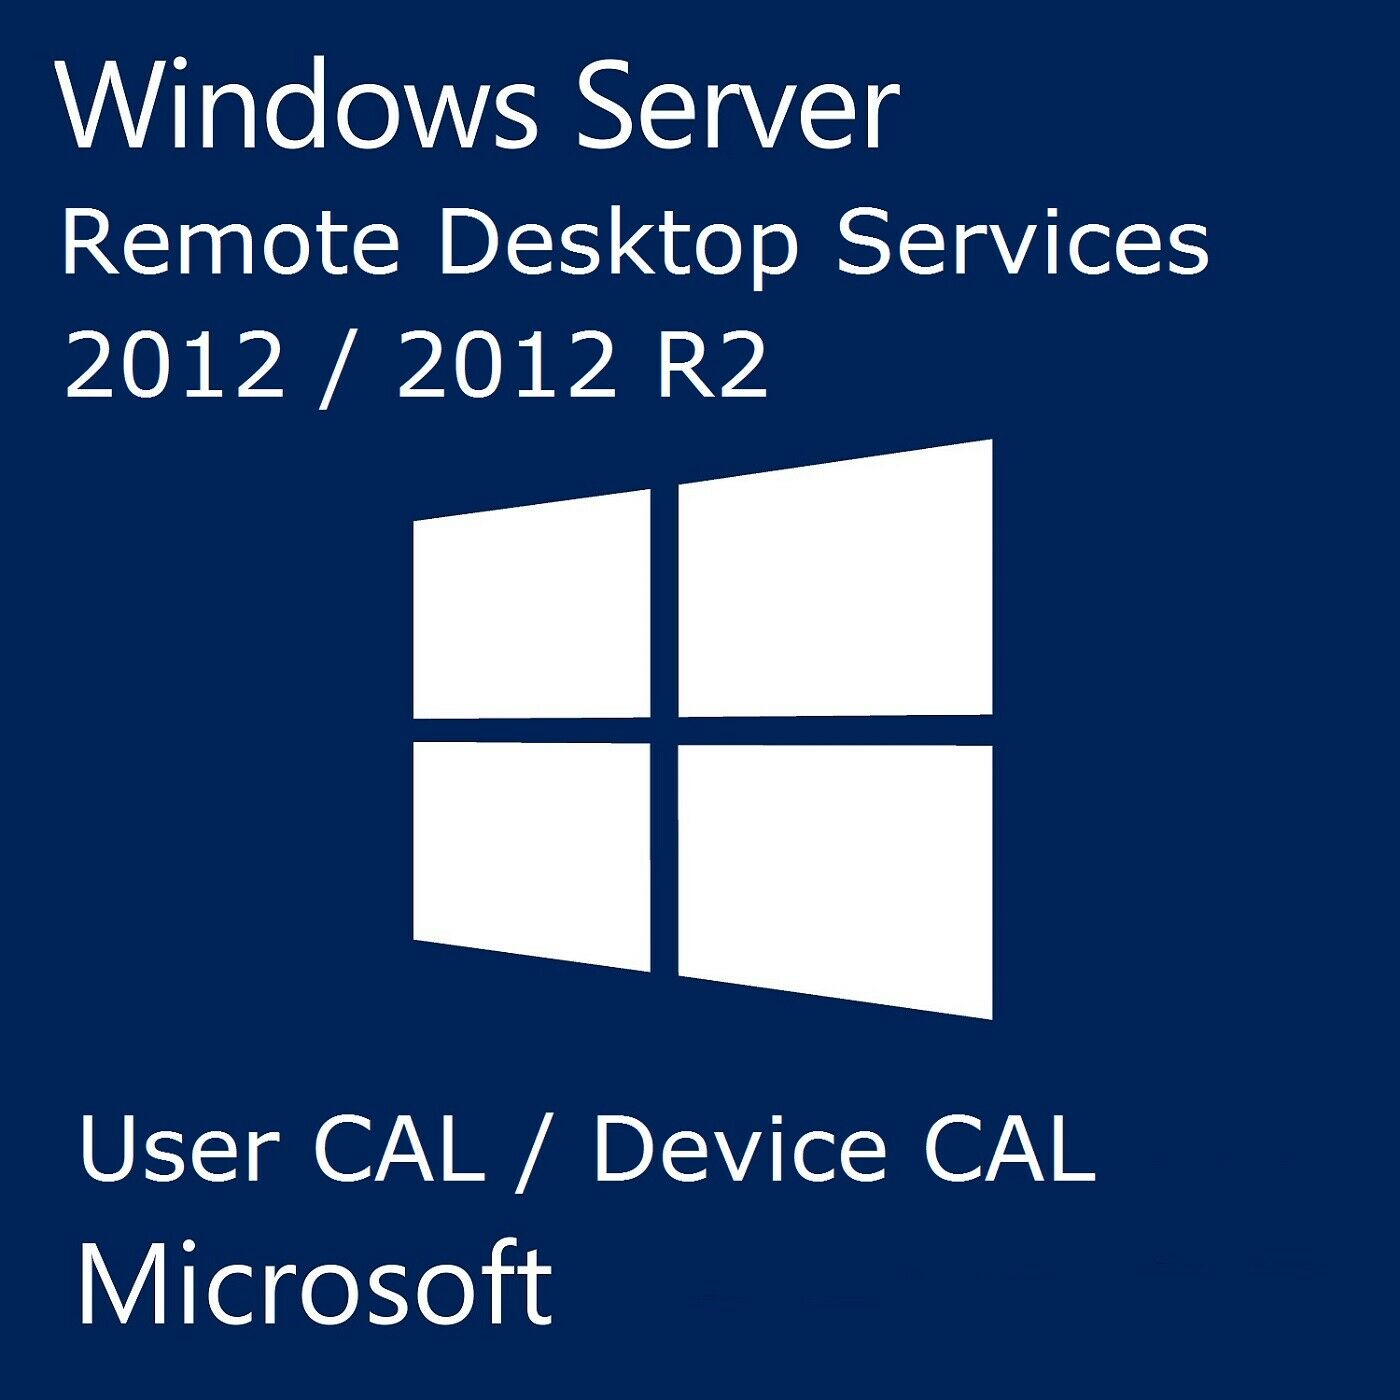 License Key Windows Server 2012 R2 Remote Desktop Services RDS 50 DEVICE CAL